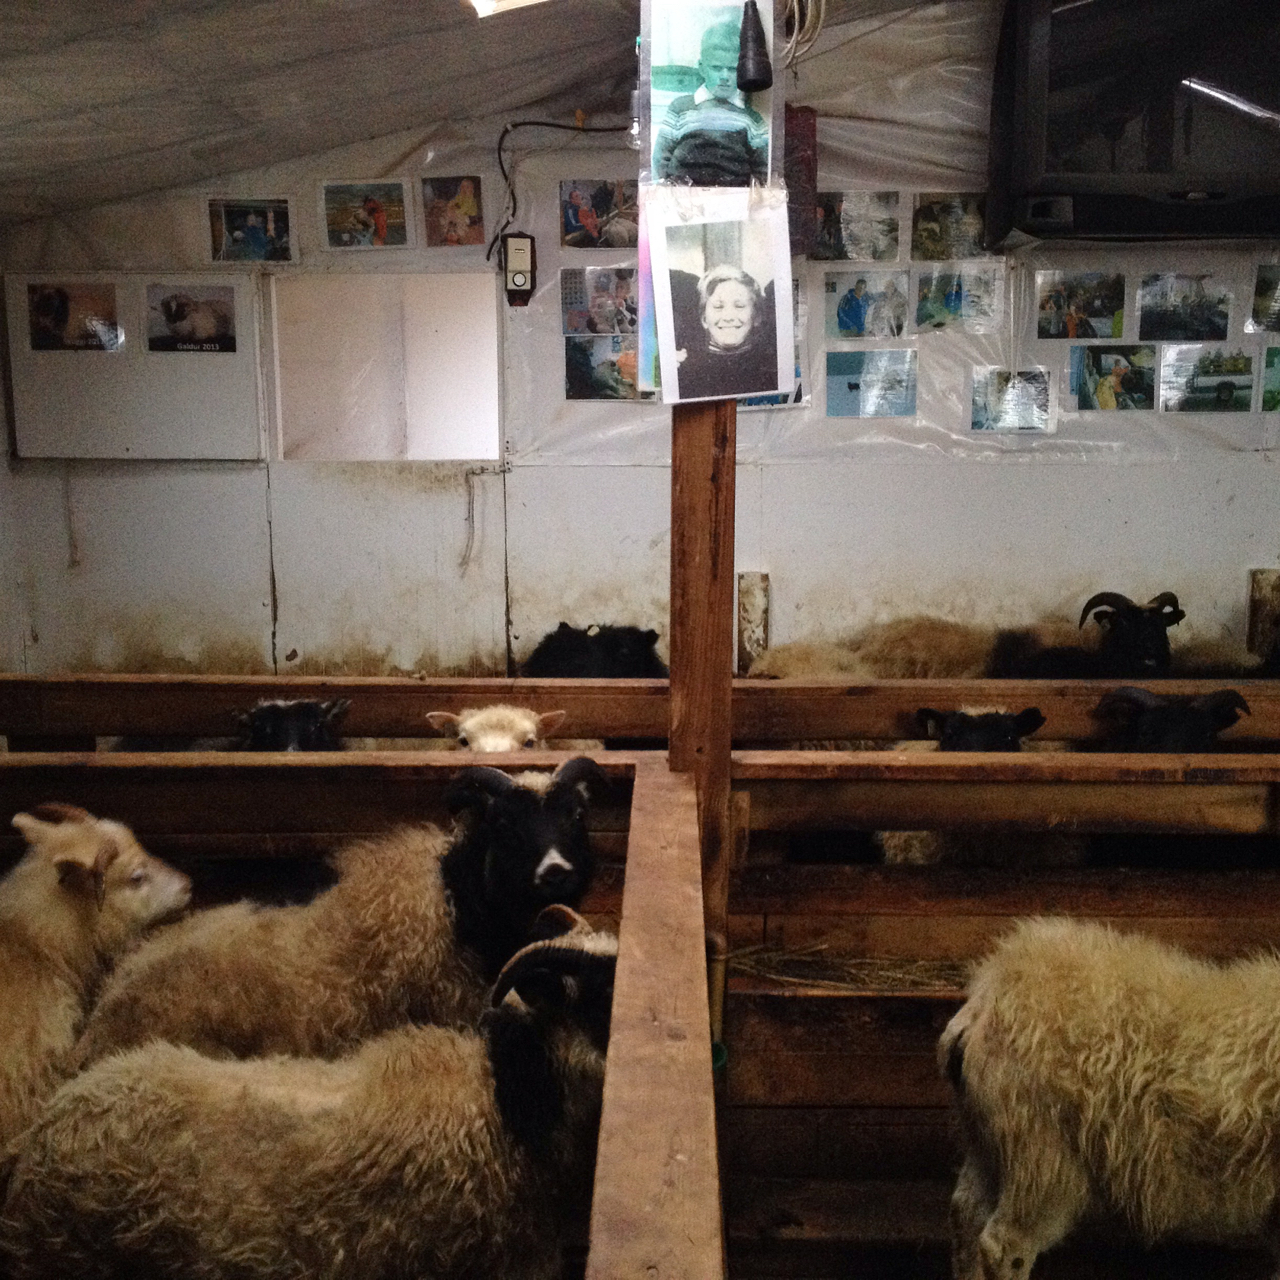 Jón, Icelandic cross country skiing champion and one of Òlafsfjörður's two policeman, has had an awkward mating season on his farm. Indriði, his newly acquired ram, turned out to be gay. Still, he loves his flock. His sheep listen to Bylgjan 100.6FM over the winter, because it makes them happy. They get to peruse the family picture album on the wall. The ones who survive the annual autumn slaughter are rewarded with a photo-shoot, a name, and a spot in his enormous livestock register.  The rest become  hangikjot , deliciously salty and twice-smoked over their own manure.